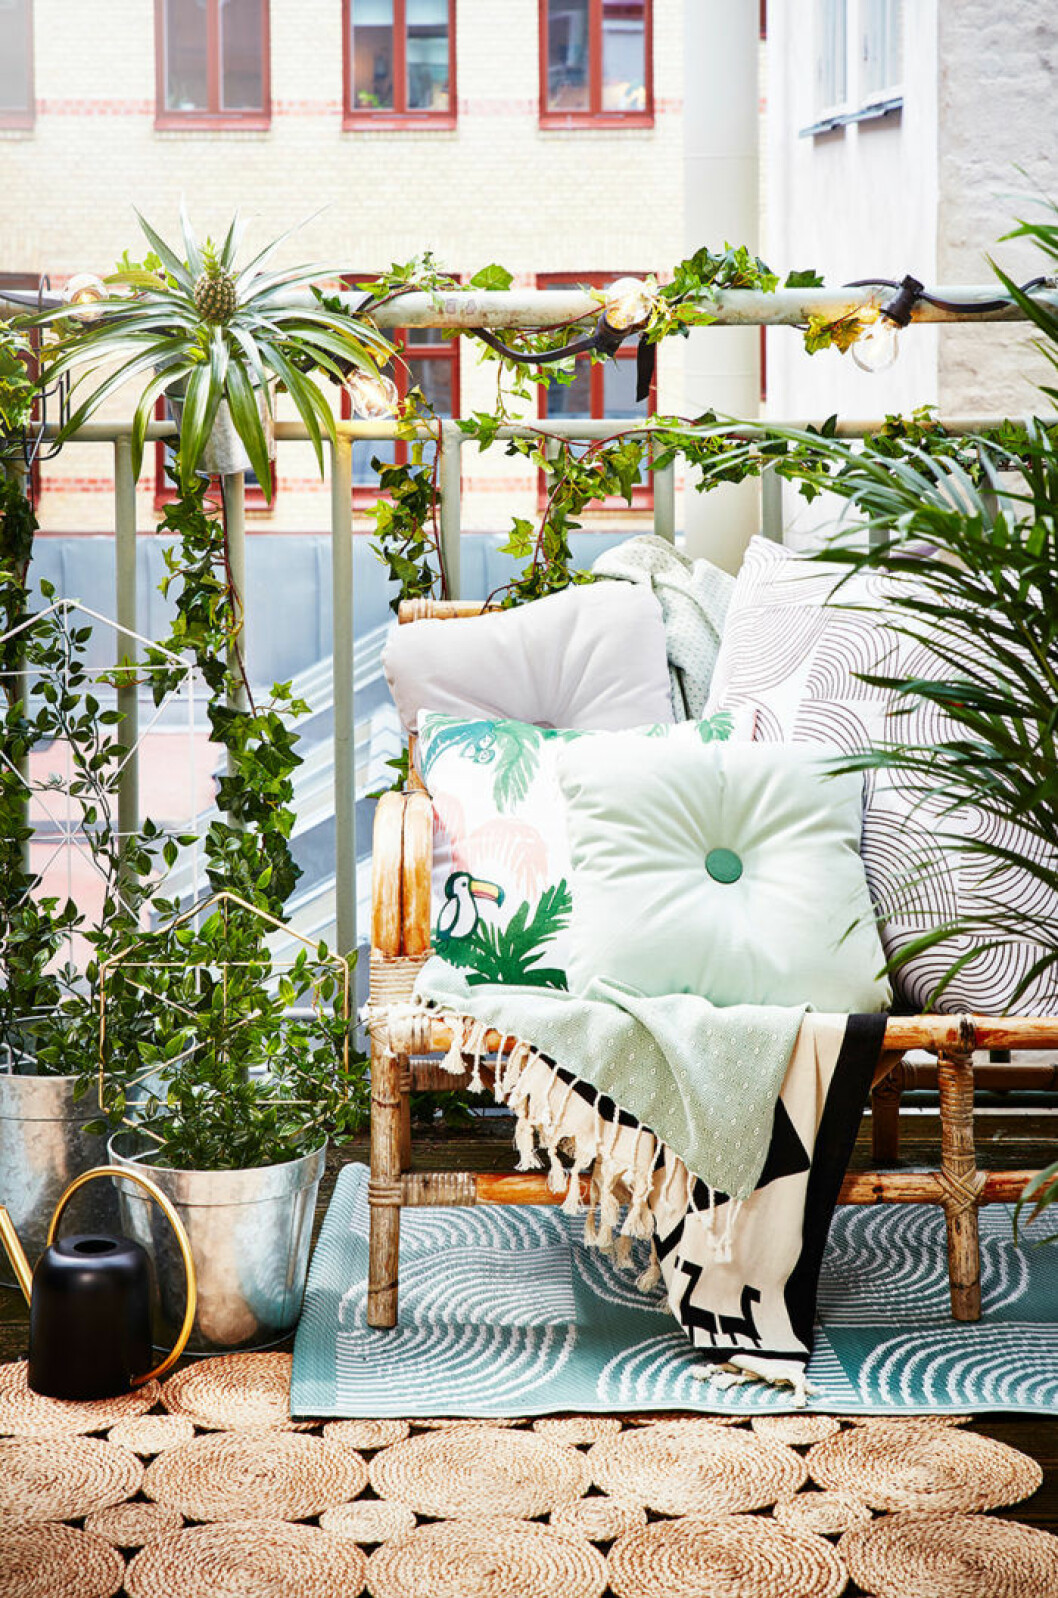 Summer balcony with plants and pillows.